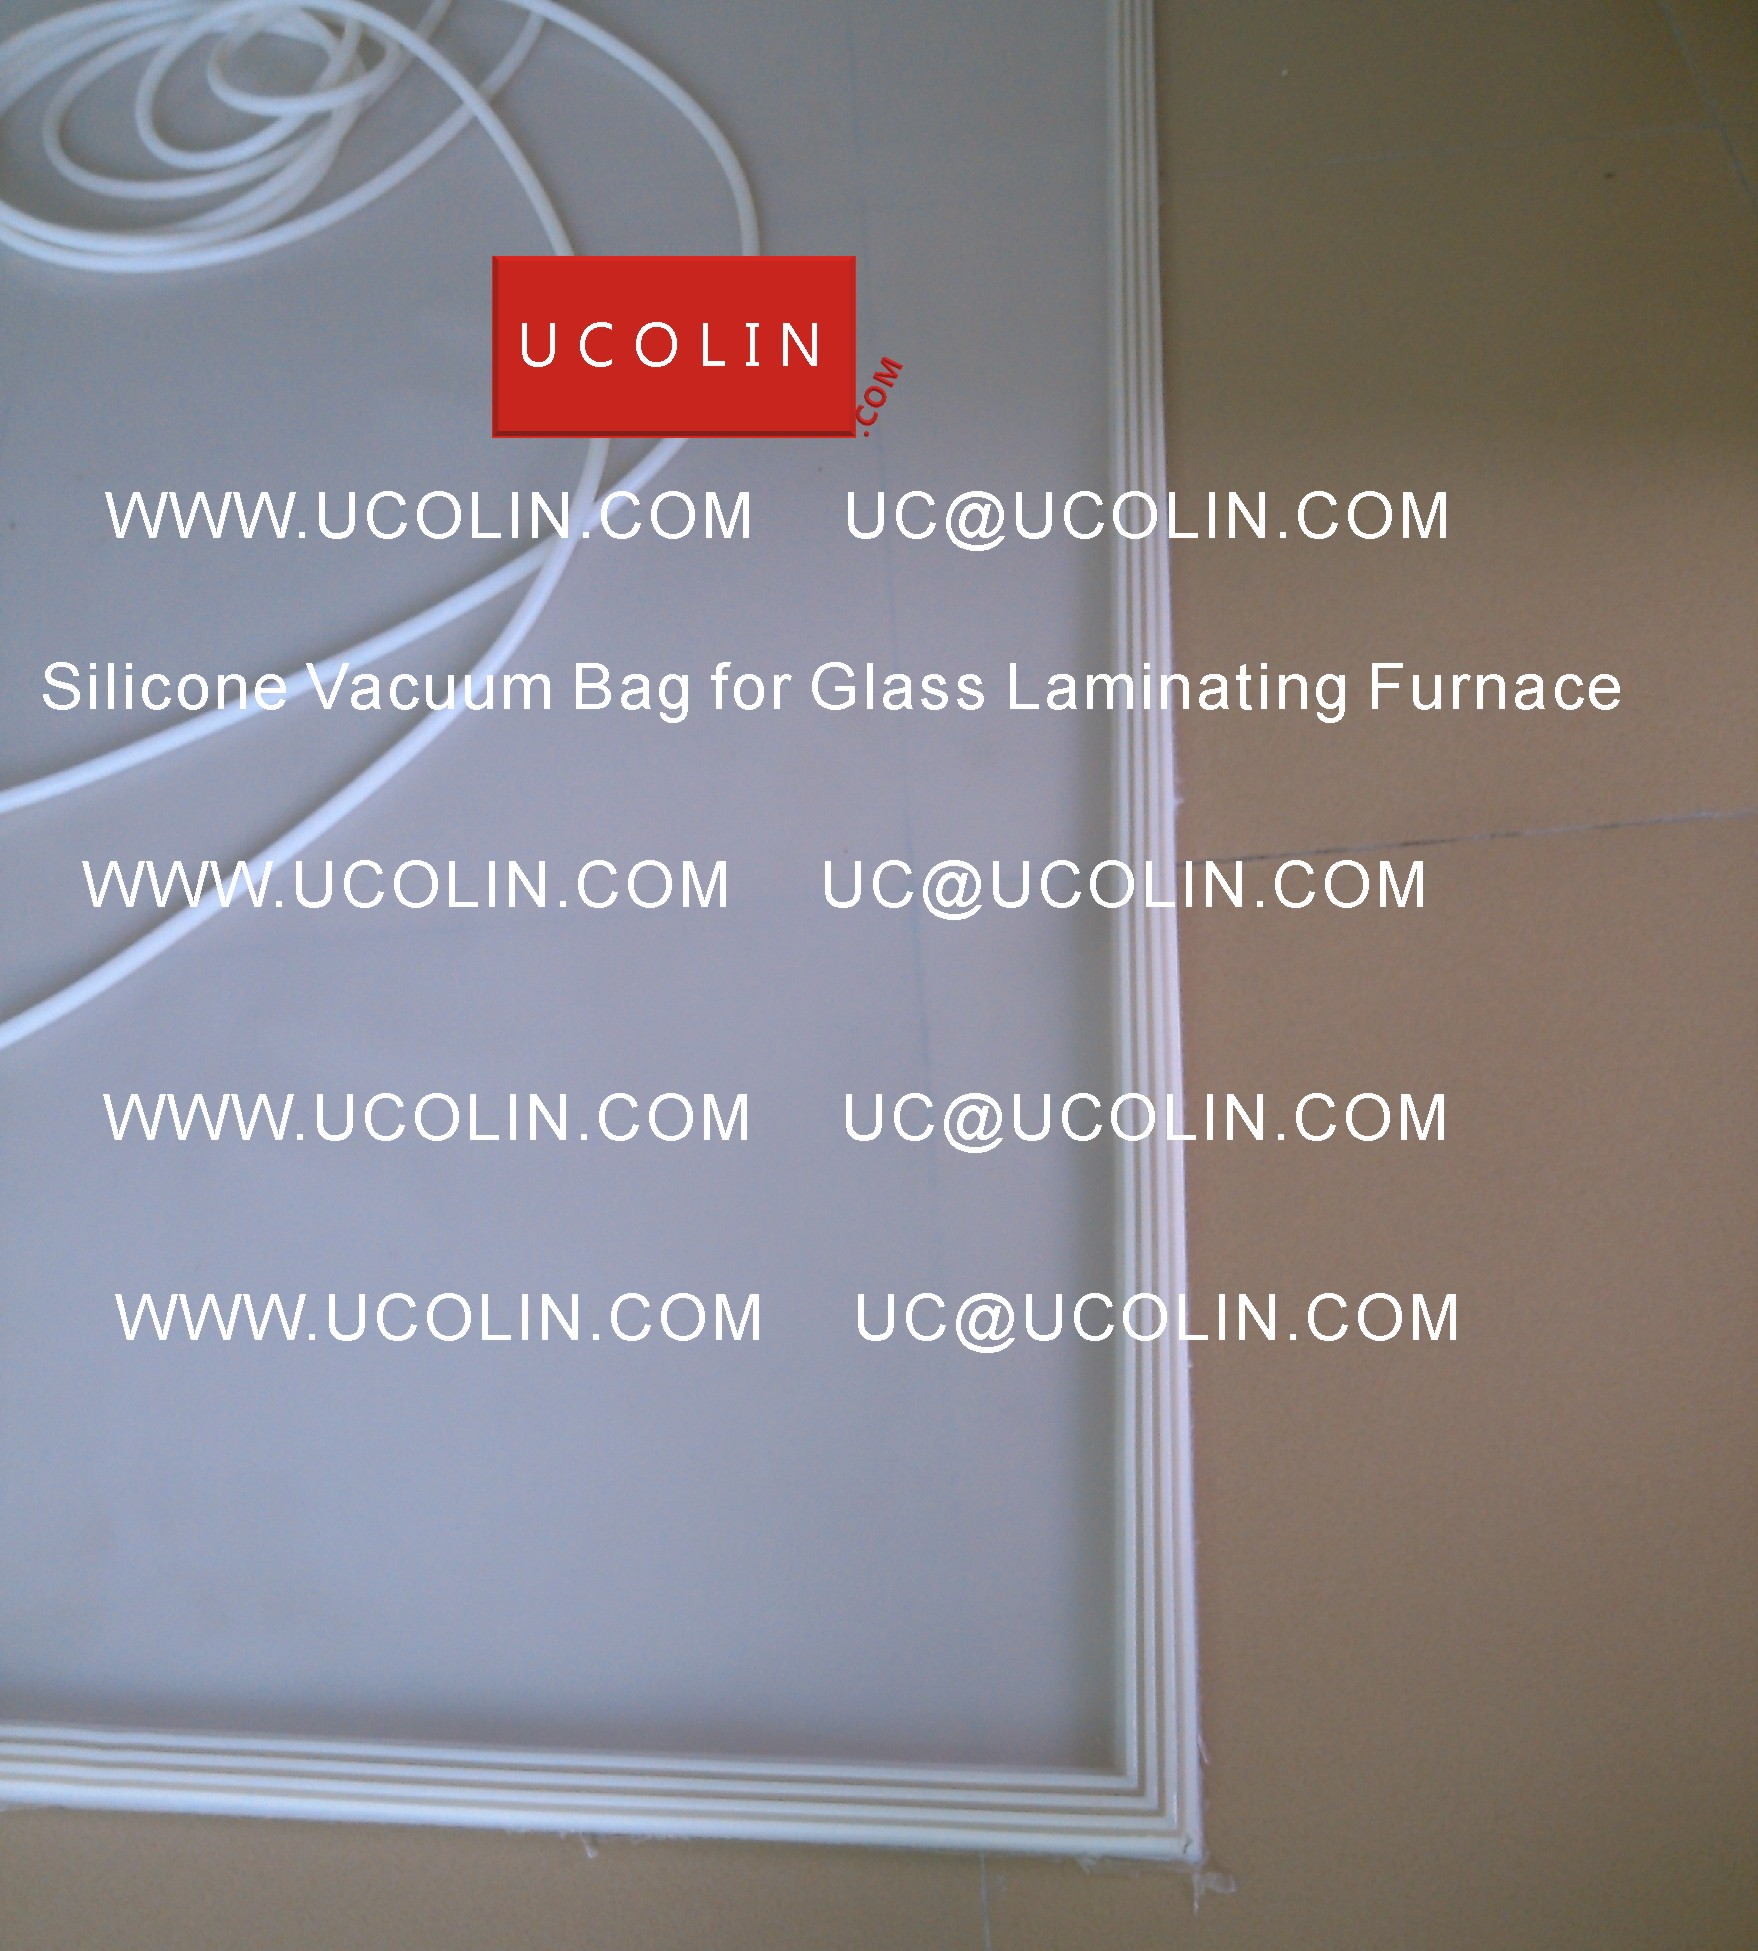 02 Silicone Vacuum Bag for Safety Glass Laminating Furnace